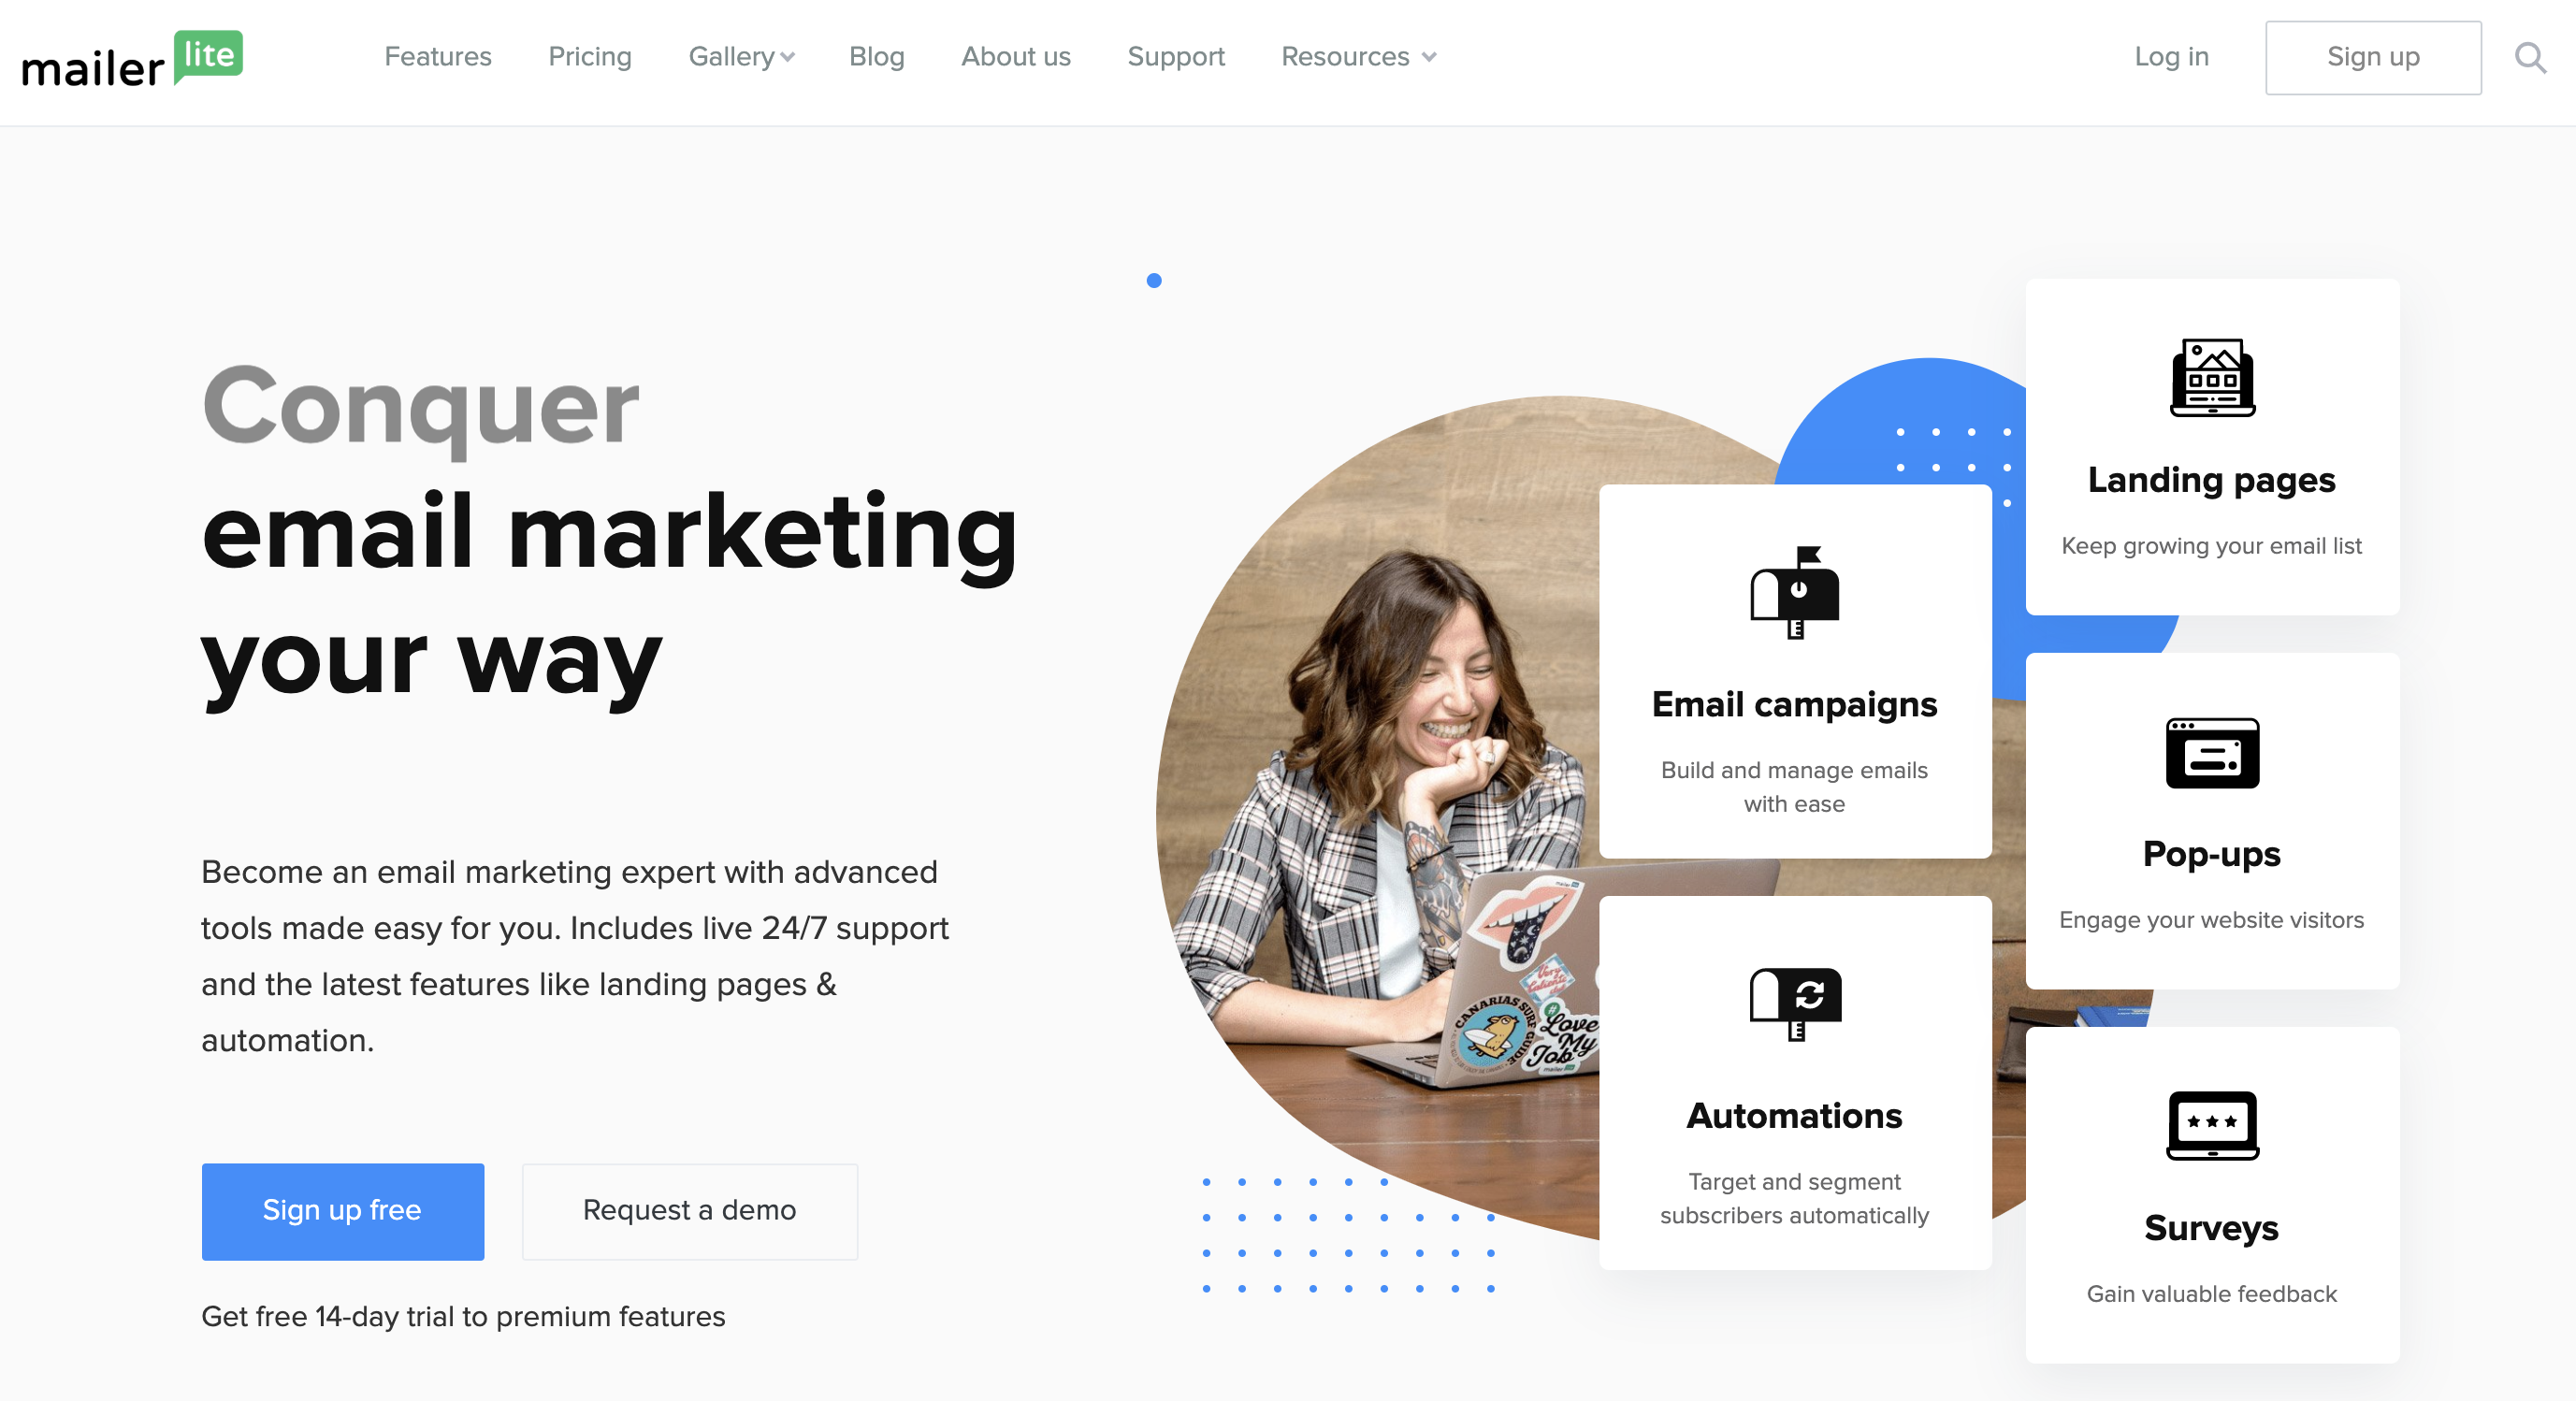 mailerlite email campaigns